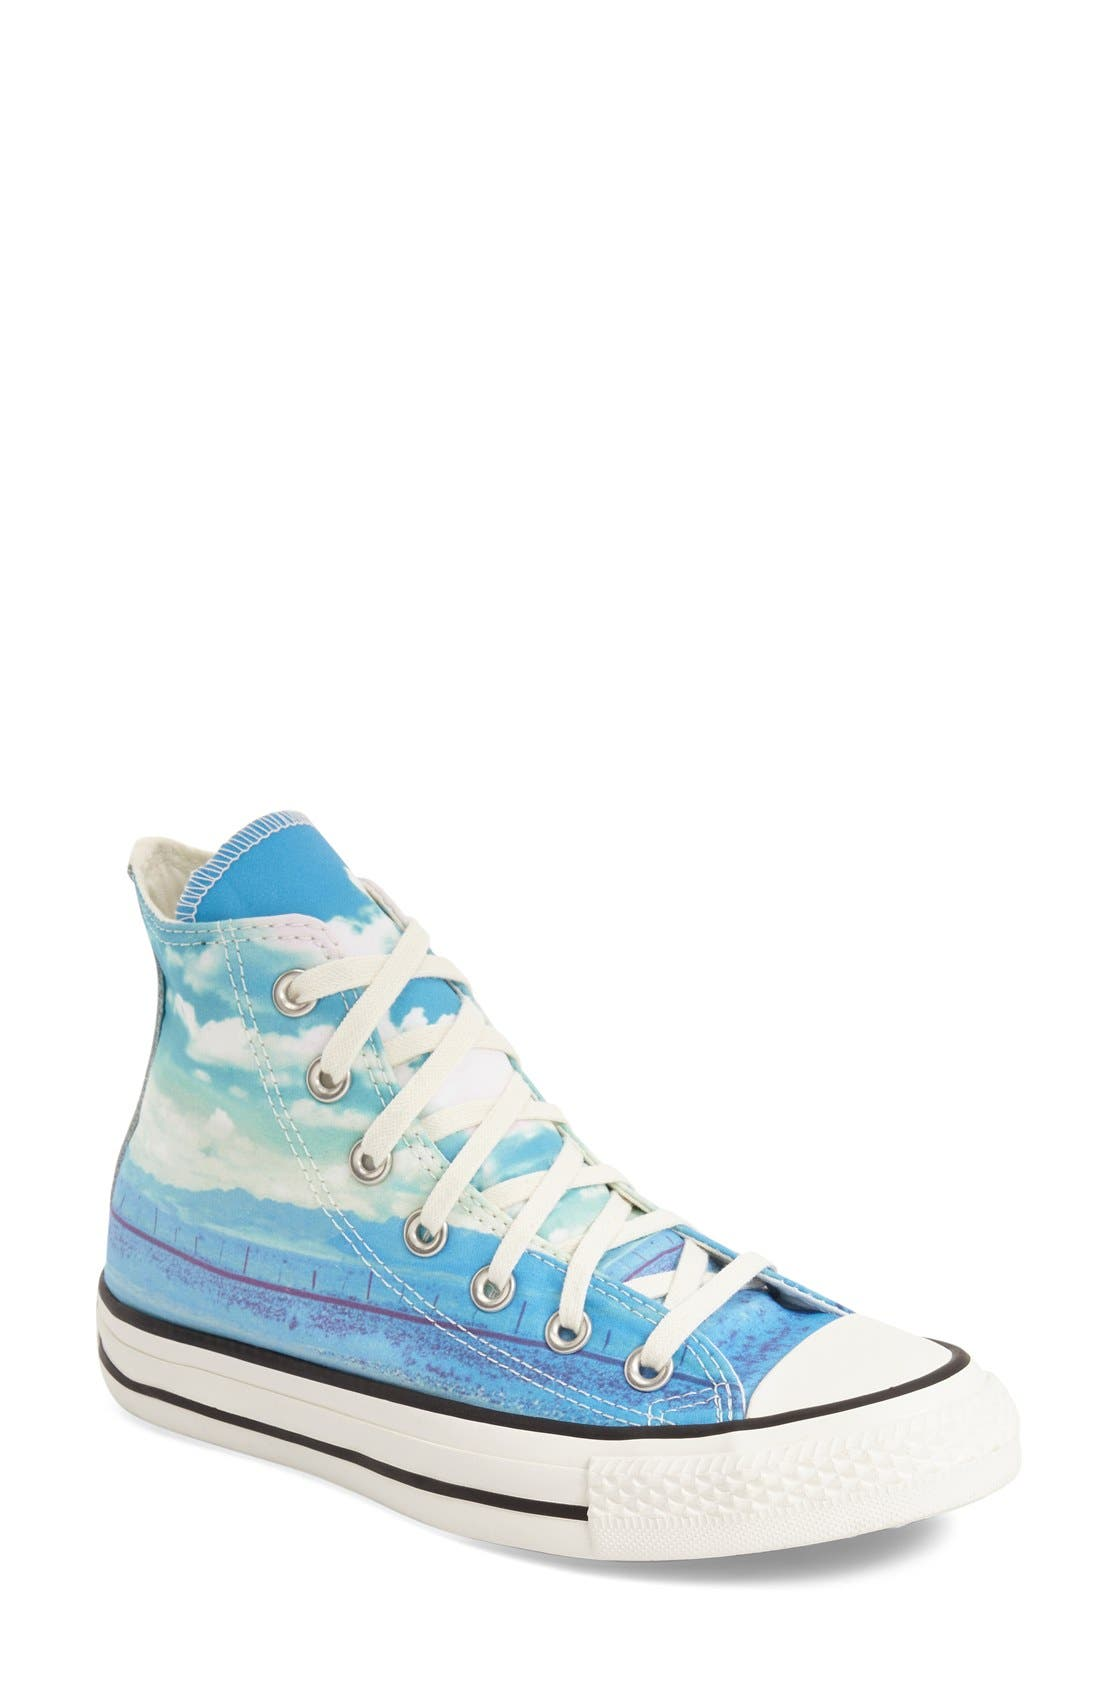 Alternate Image 1 Selected - Converse Chuck Taylor® All Star® 'Photo Sun' High Top Sneaker (Women)